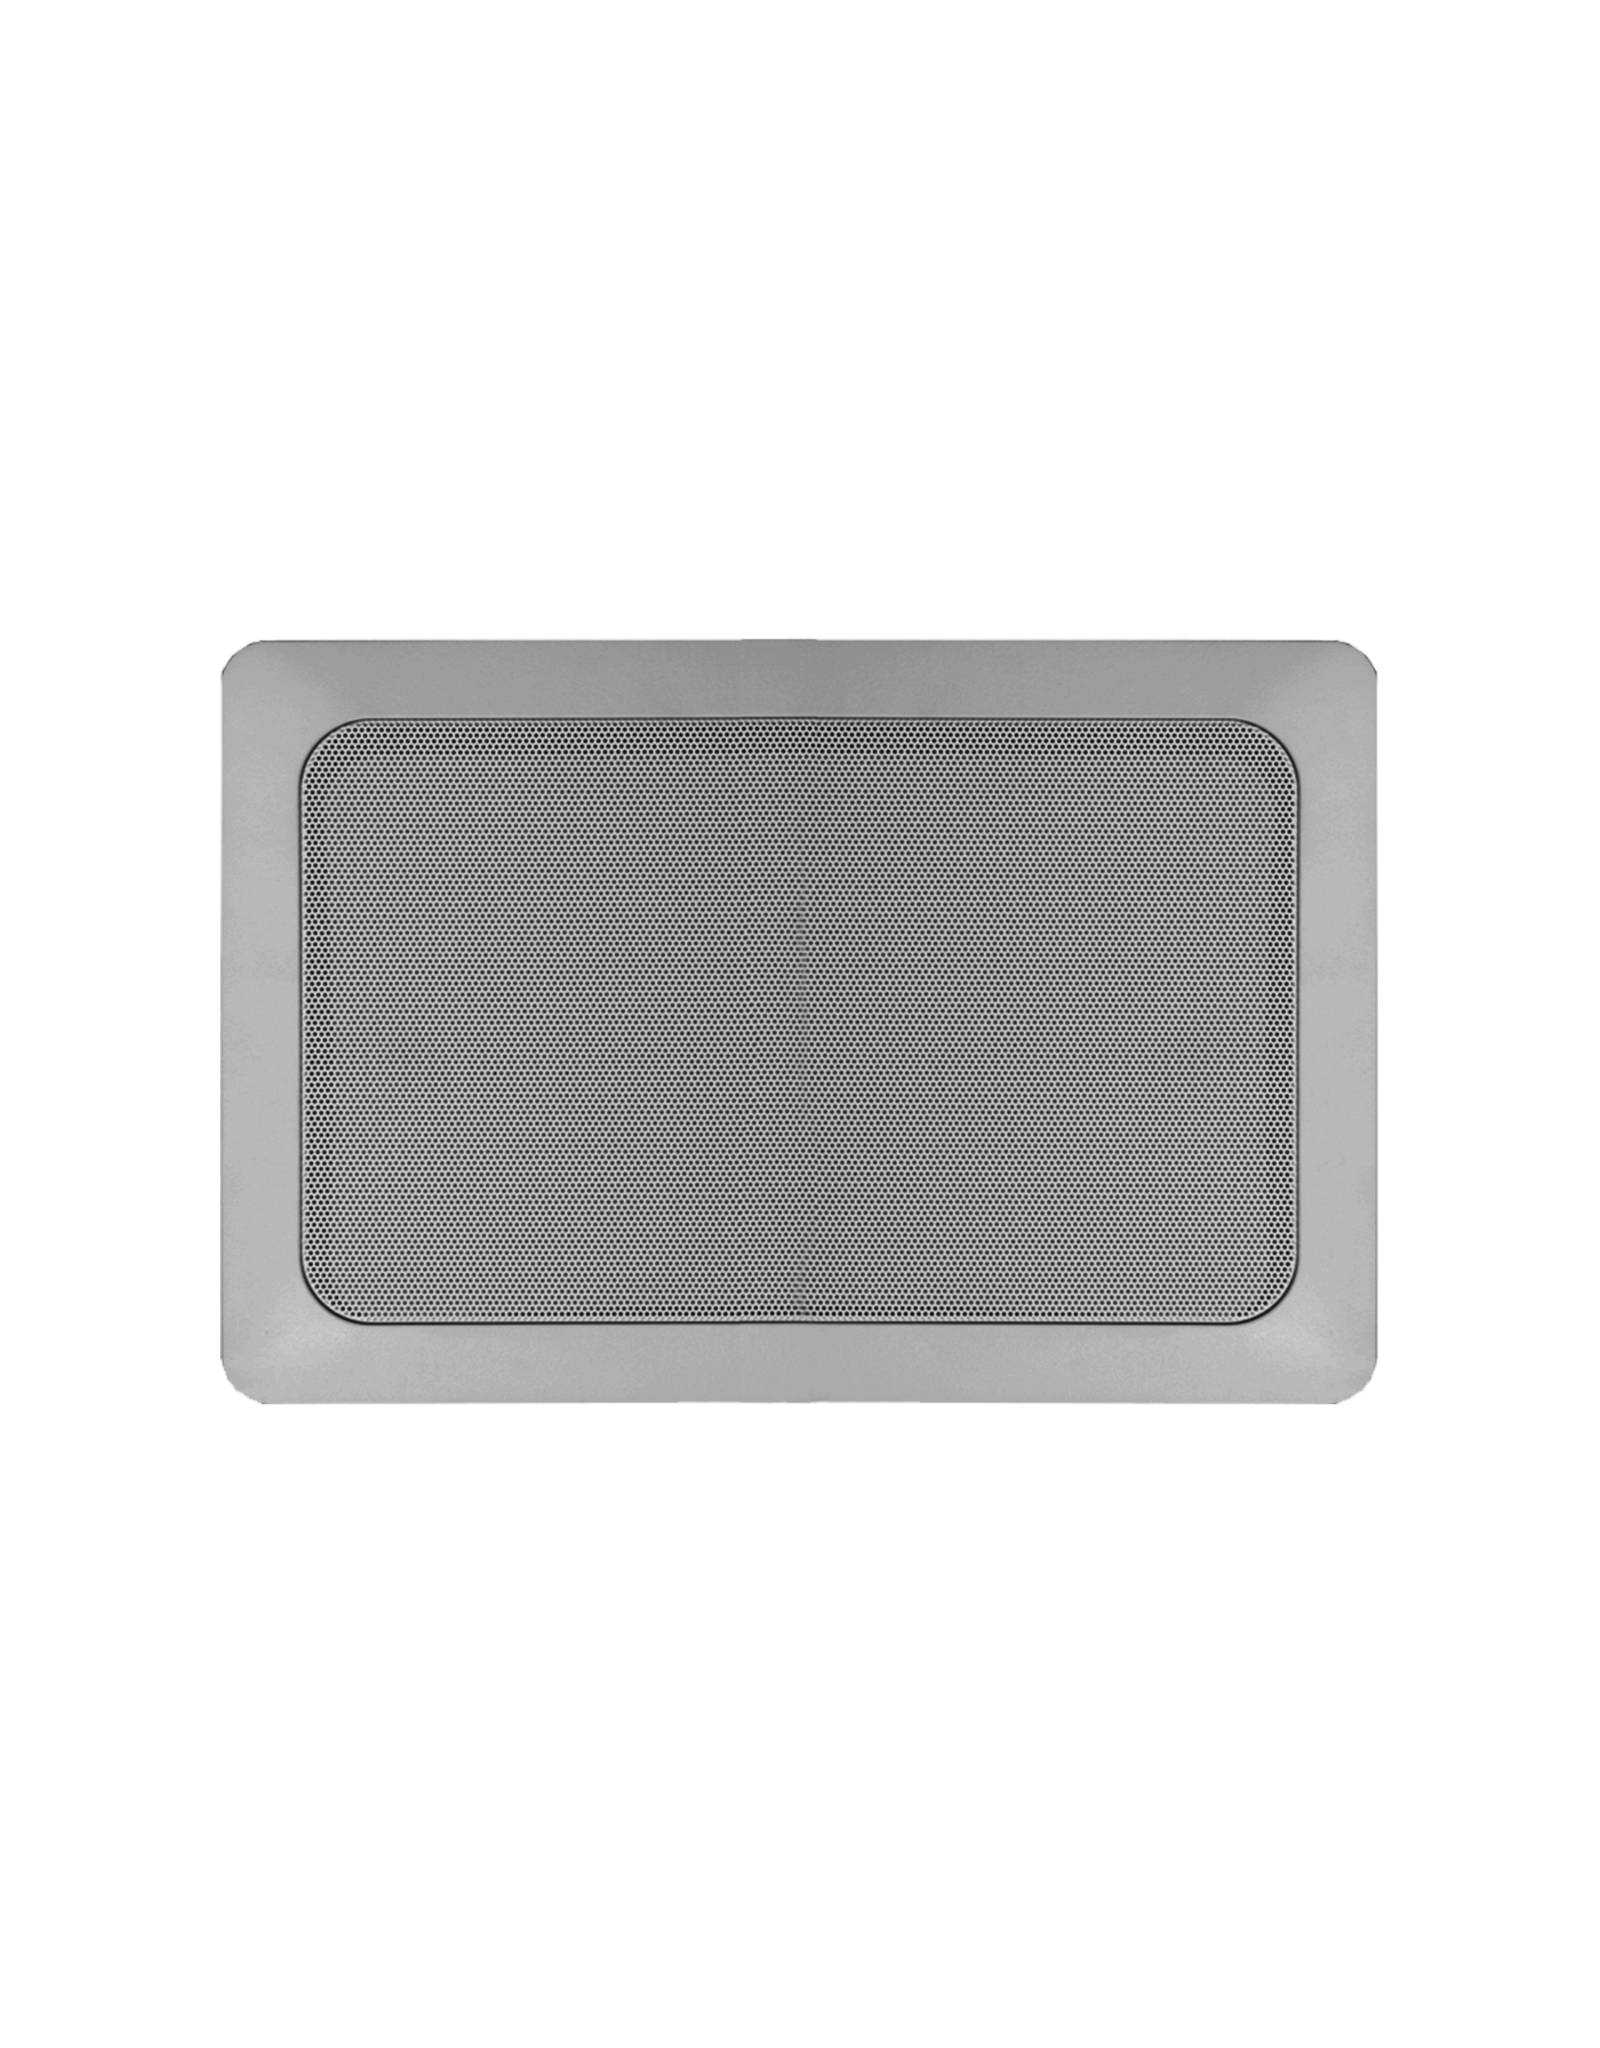 """Audac Quick fit 2-way 5 1/4"""" rectangular in-wall speaker 16 Ohm version"""